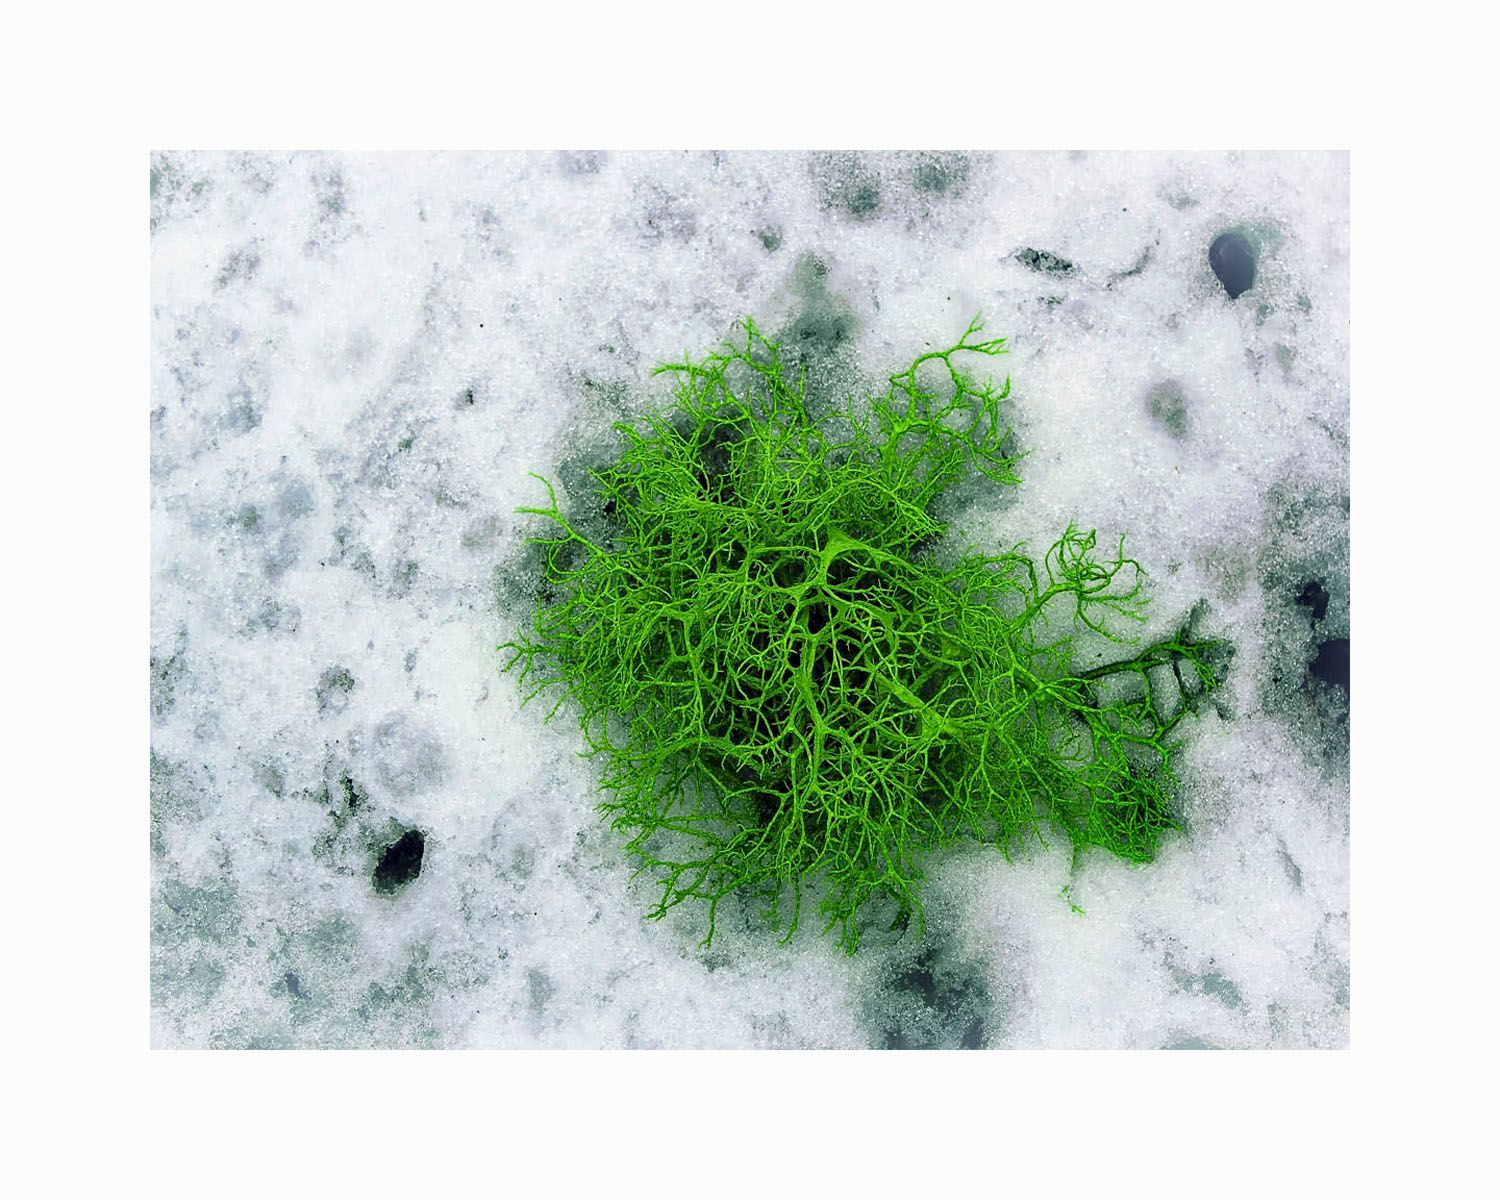 1green_moss_on_ice_16x20